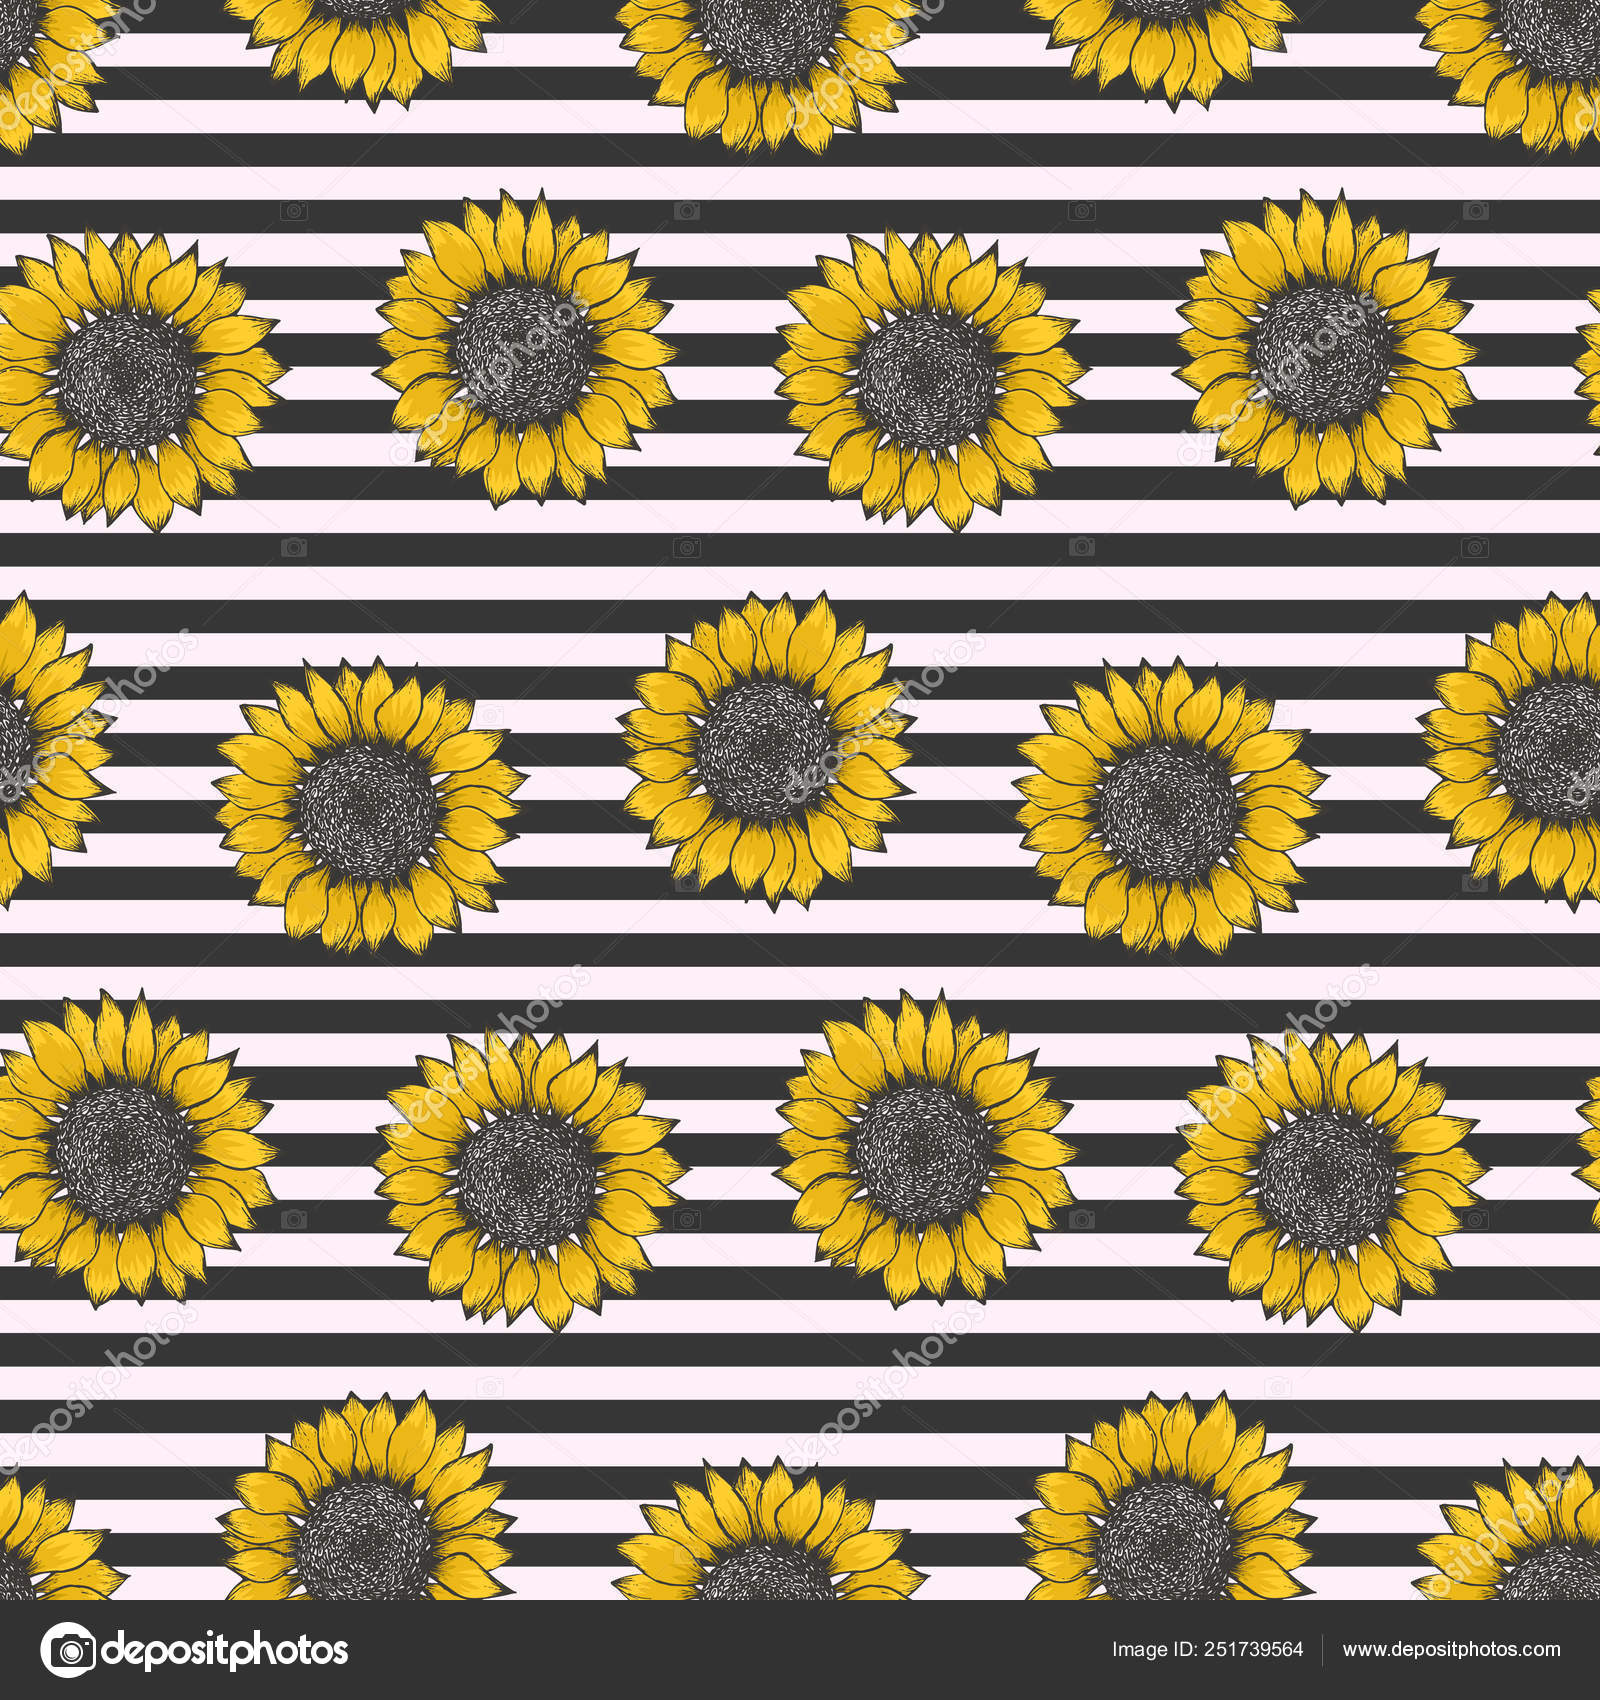 depositphotos 251739564 stock illustration hipster pattern with sunflowers on